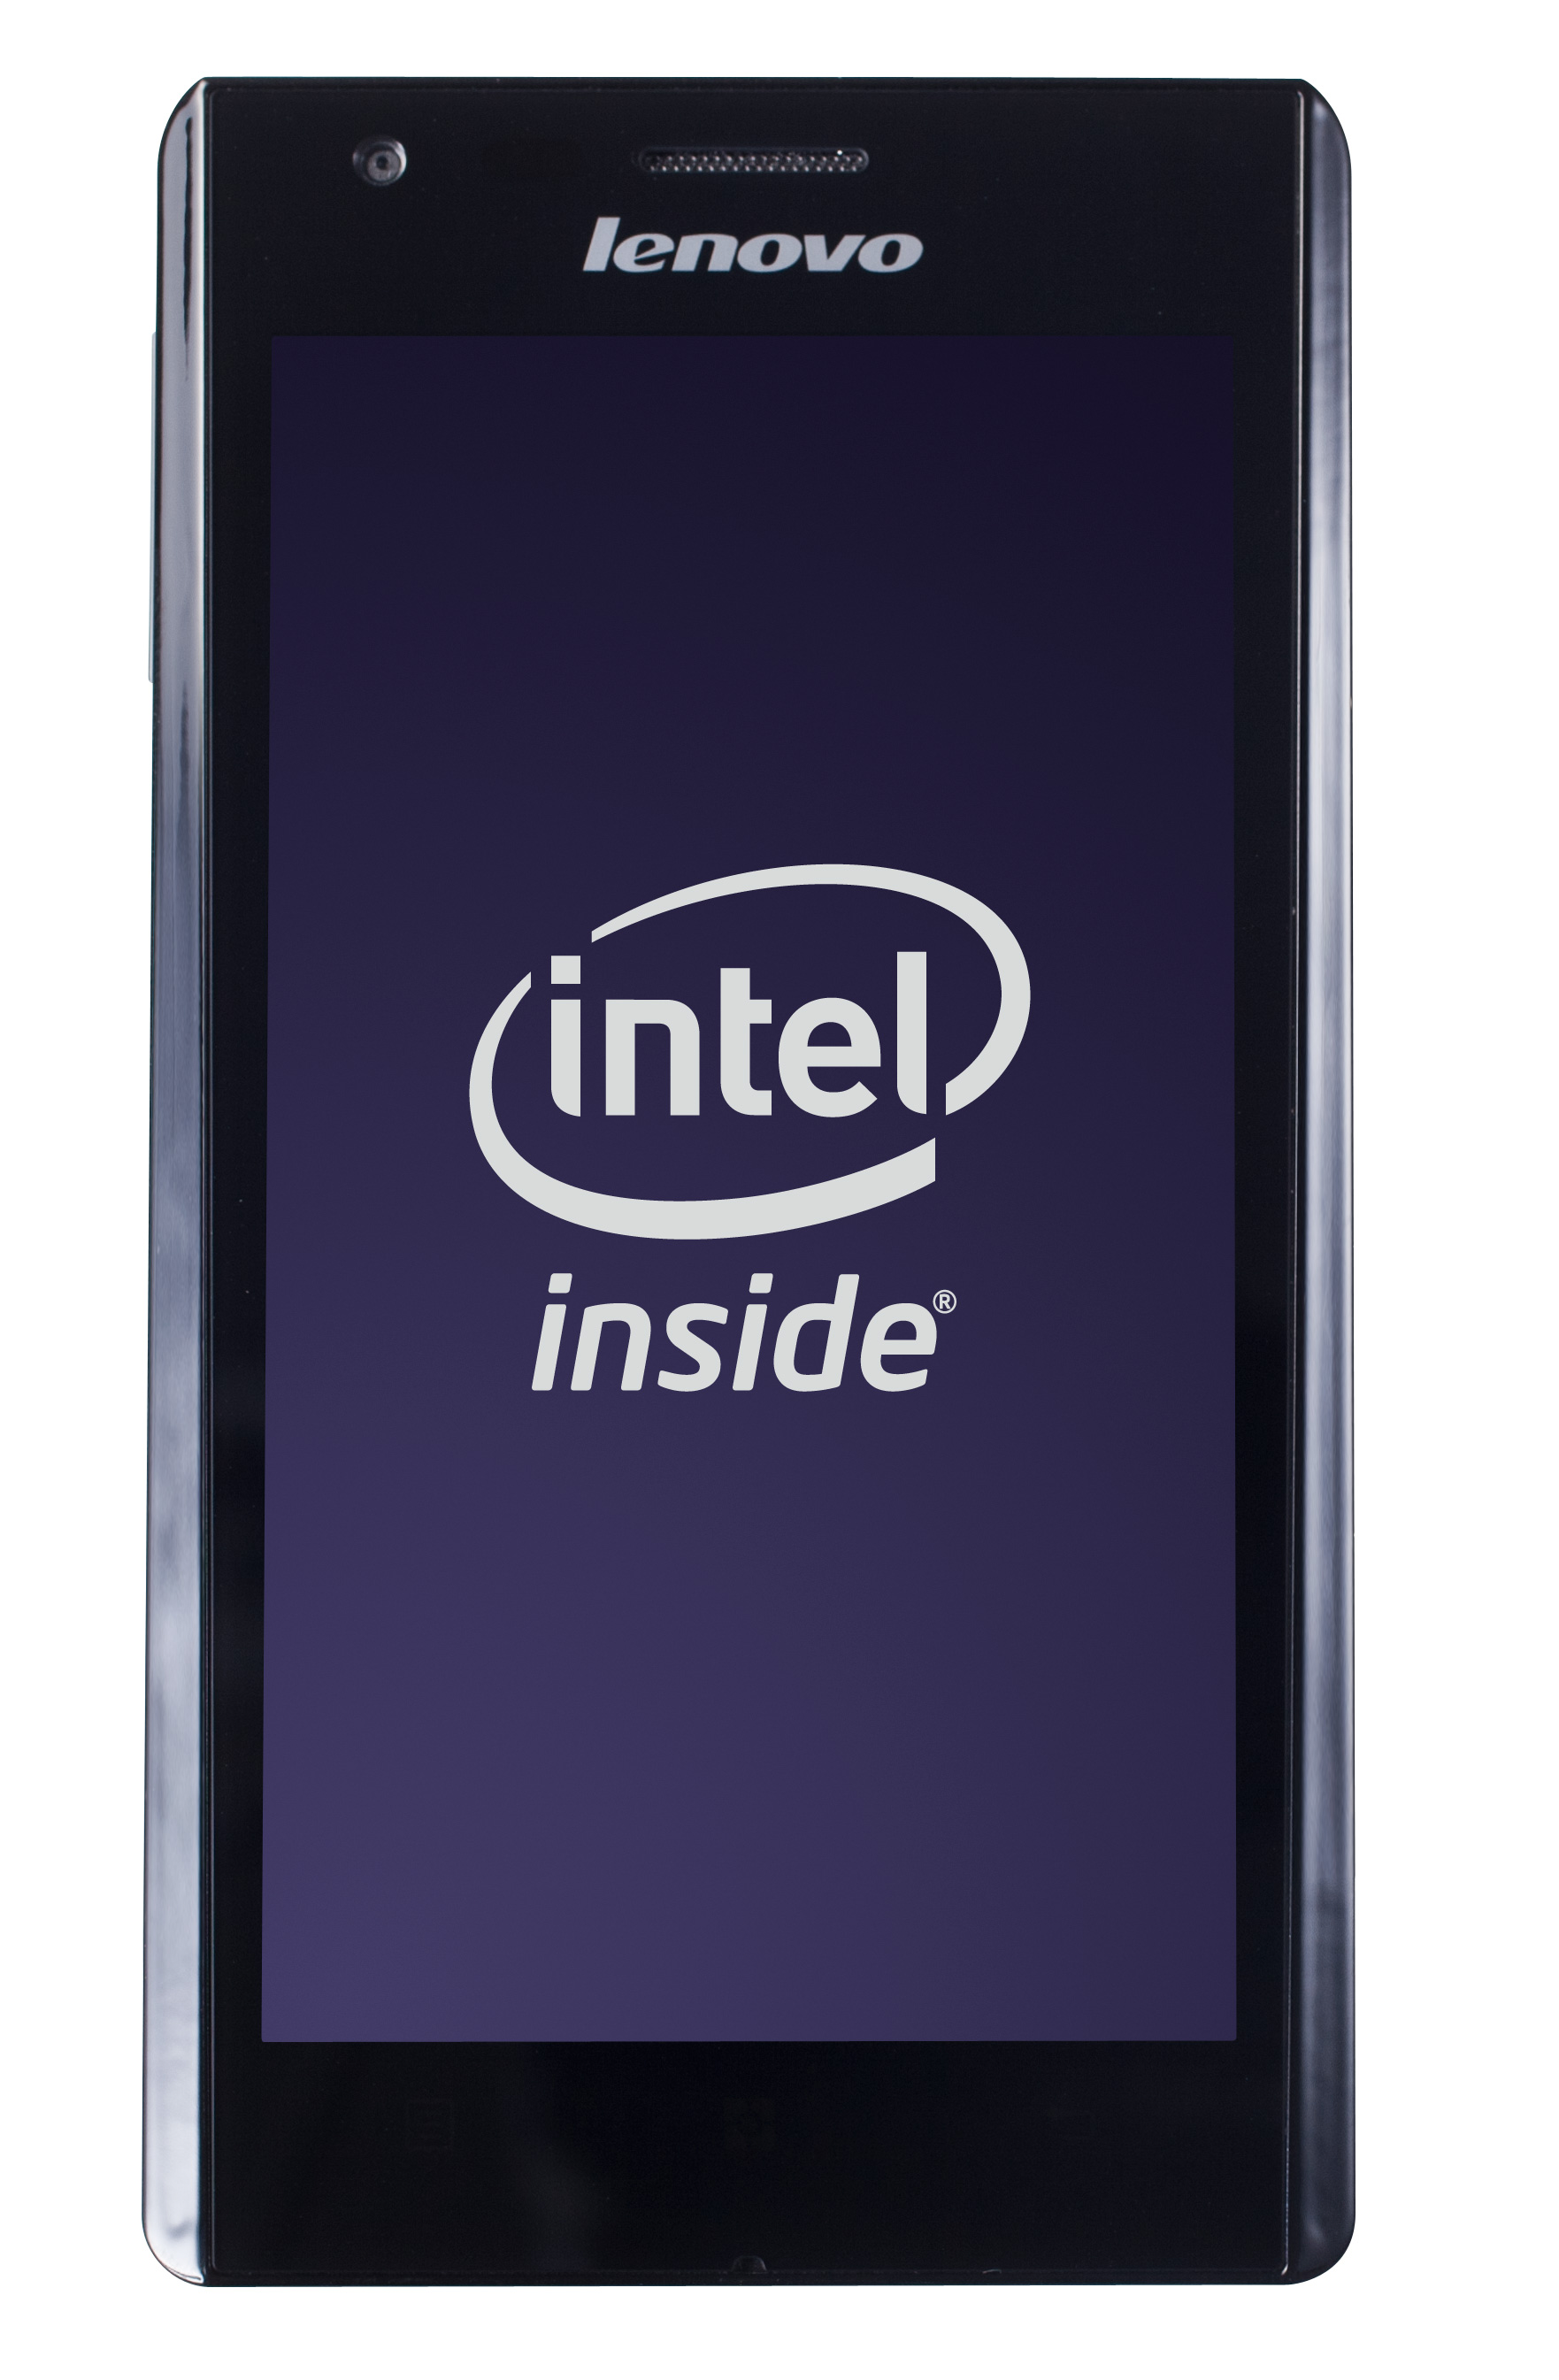 Lenovo LePhone K800* with Intel® Inside